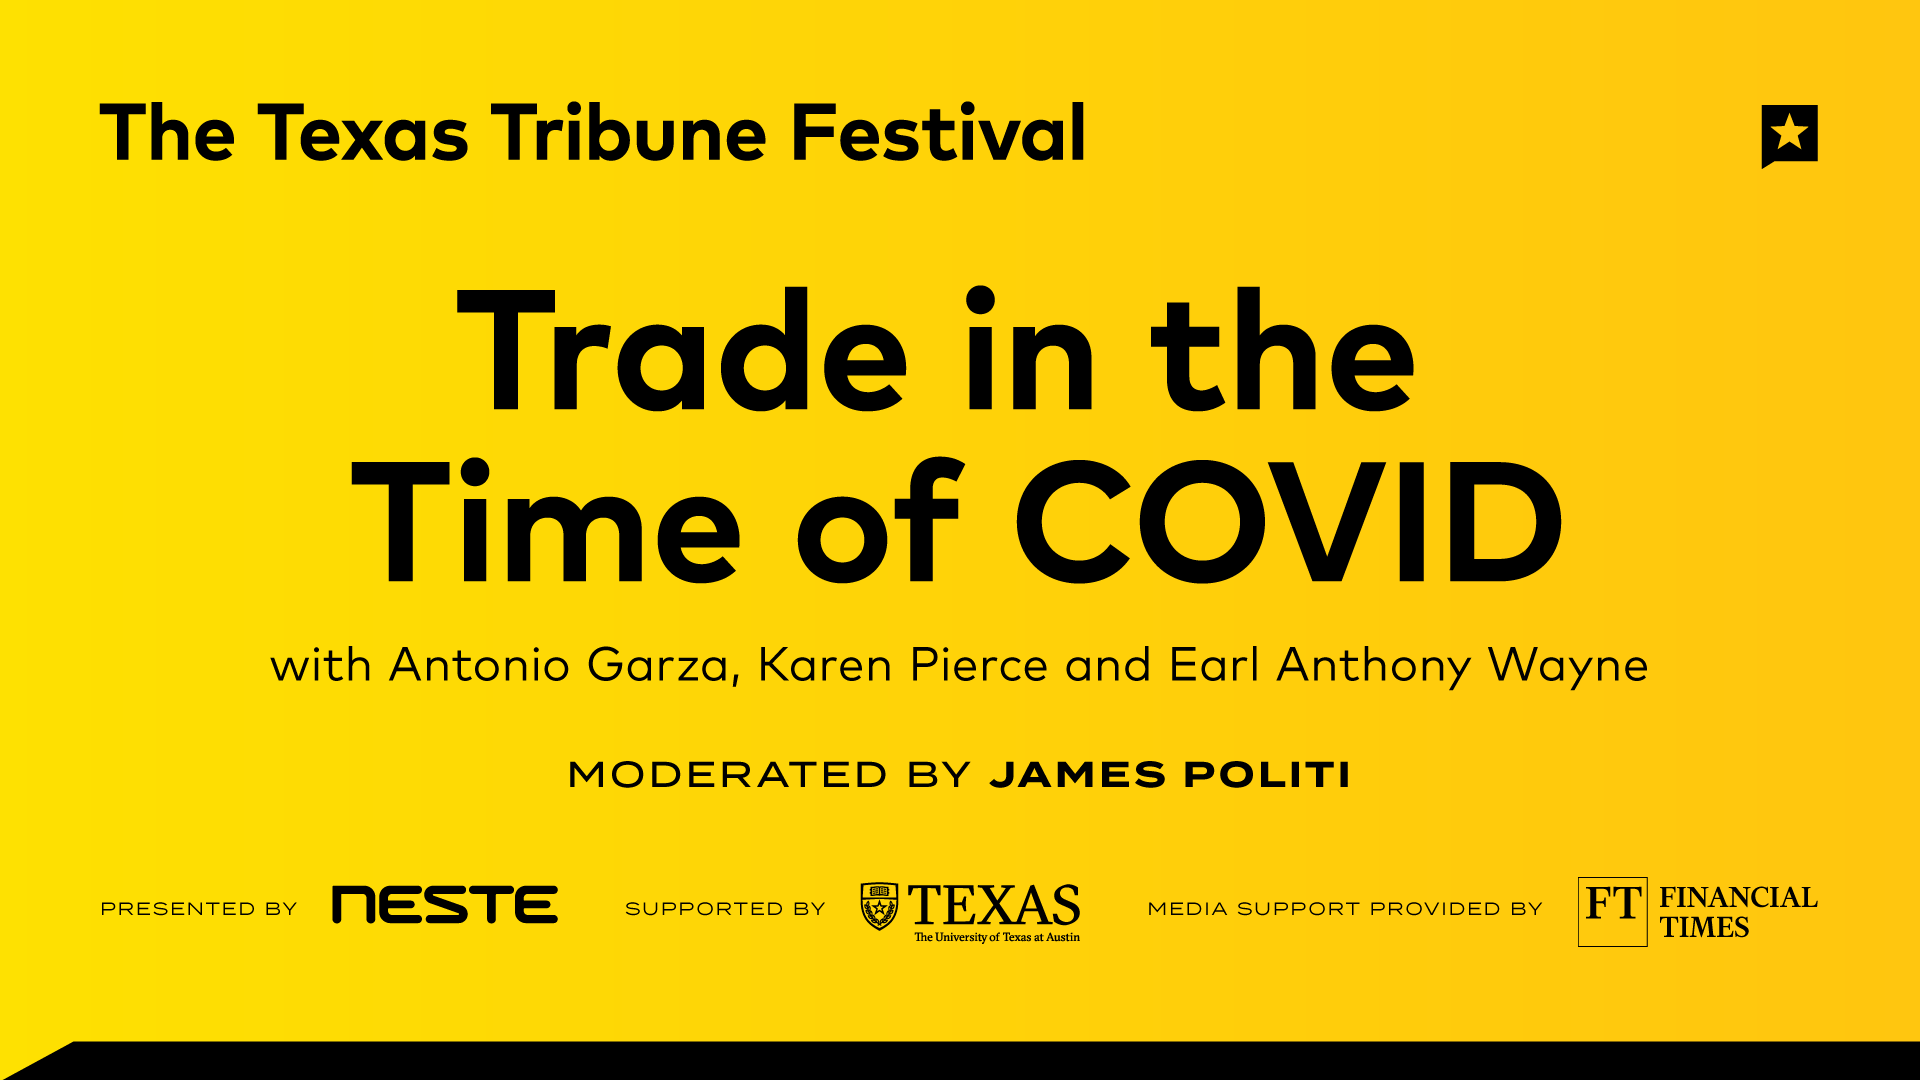 Trade in the Time of COVID